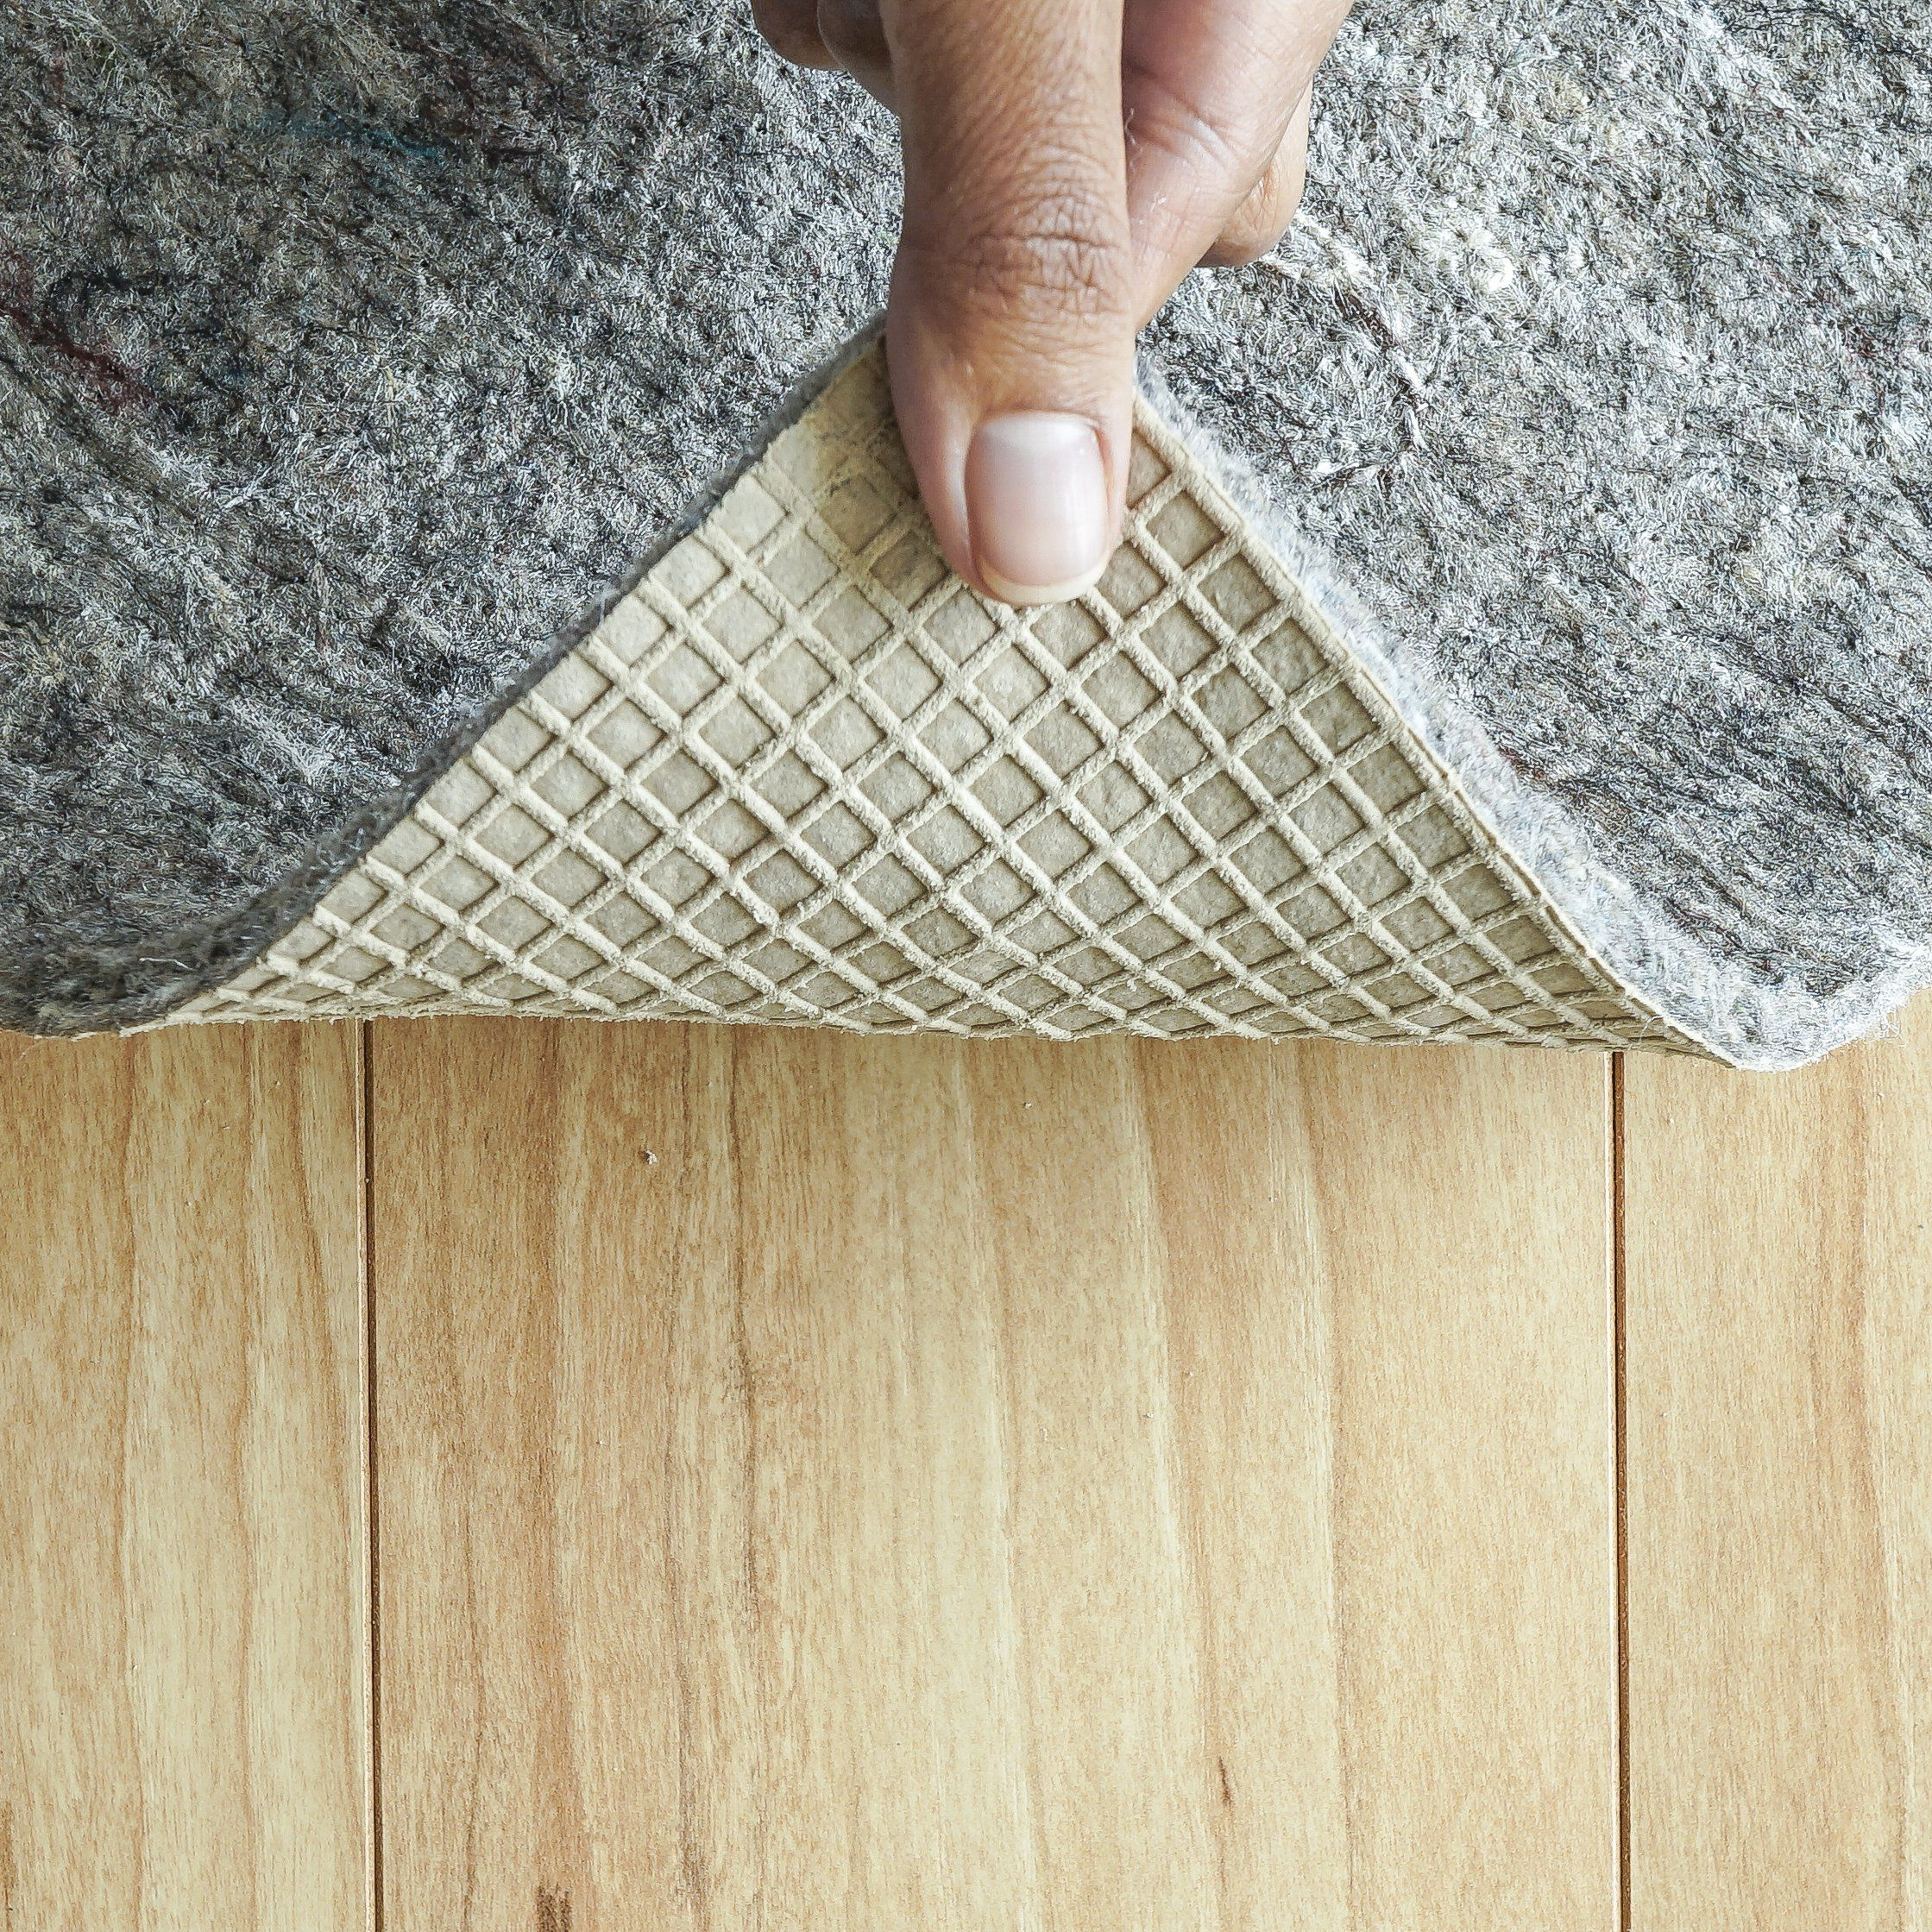 Rug Pad Usa Ag152512 Anchor Grip 15 Felt And Reinforced Rubber Rug Pad 1 8 Thick 2 5x12feet Runner You Can Get Additional Details A With Images Rubber Rugs Rug Pad Rugs